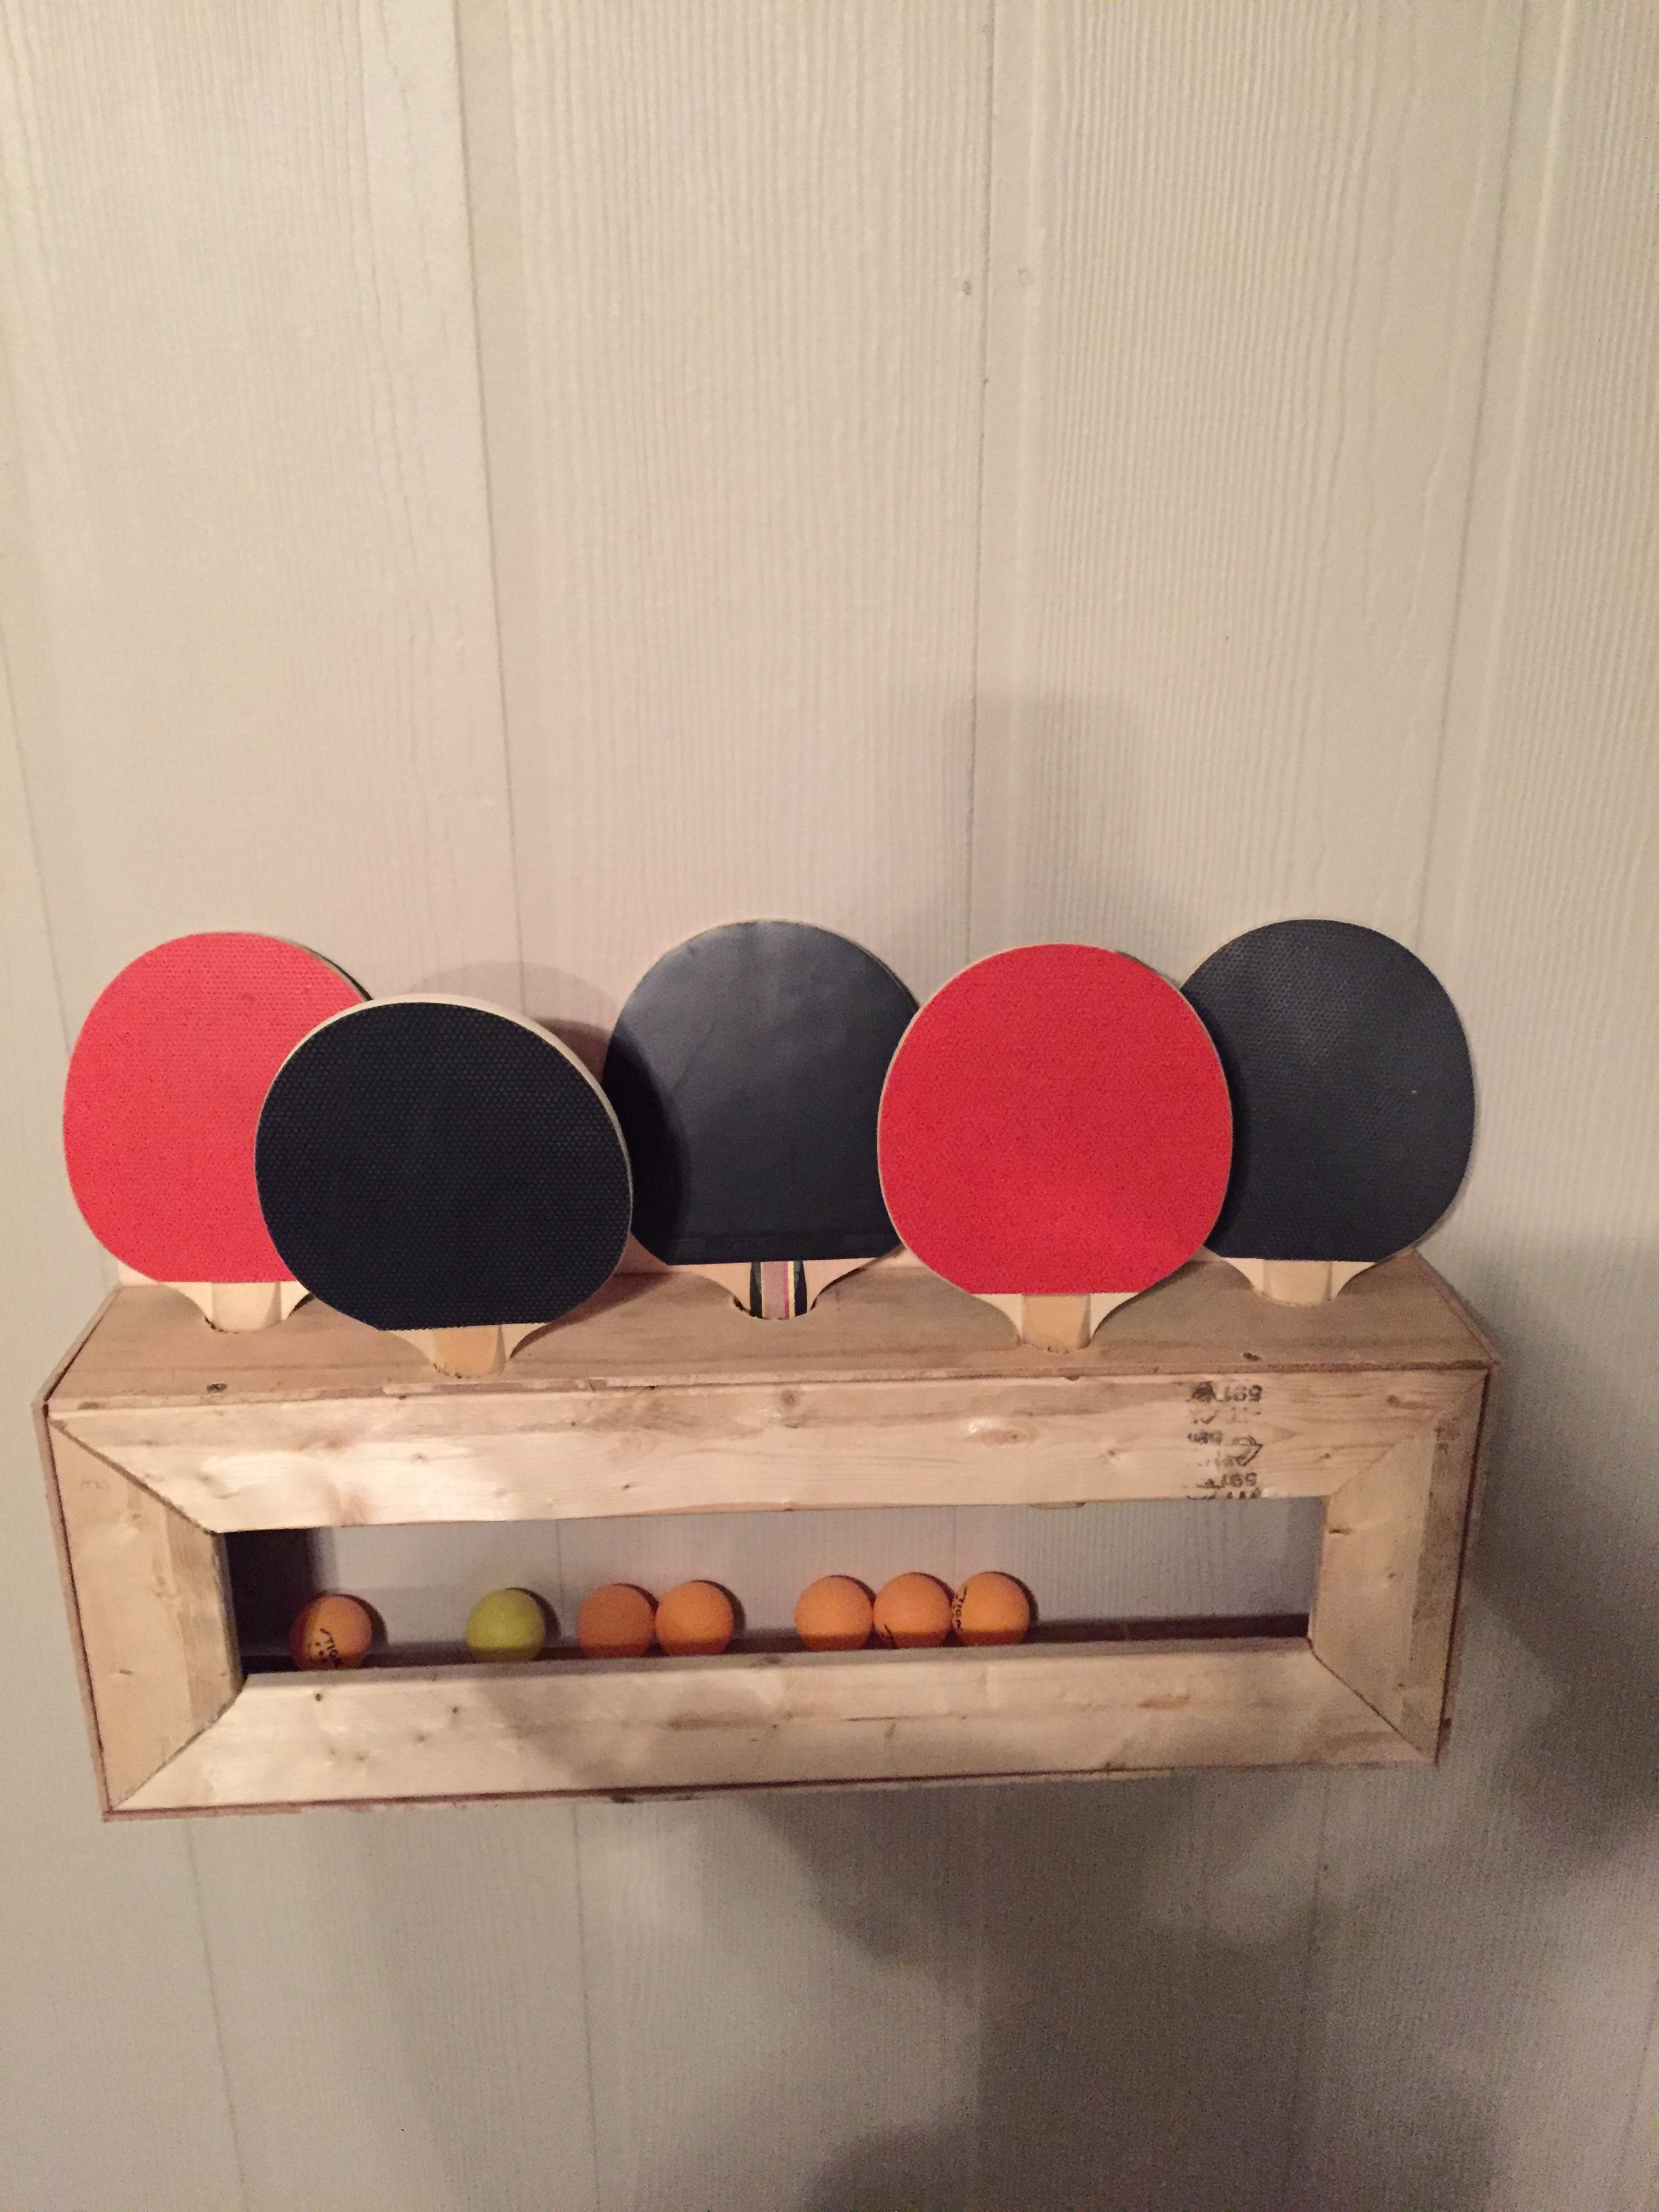 Diy Ping Pong Paddle And Ball Holder Ping Pong Paddle